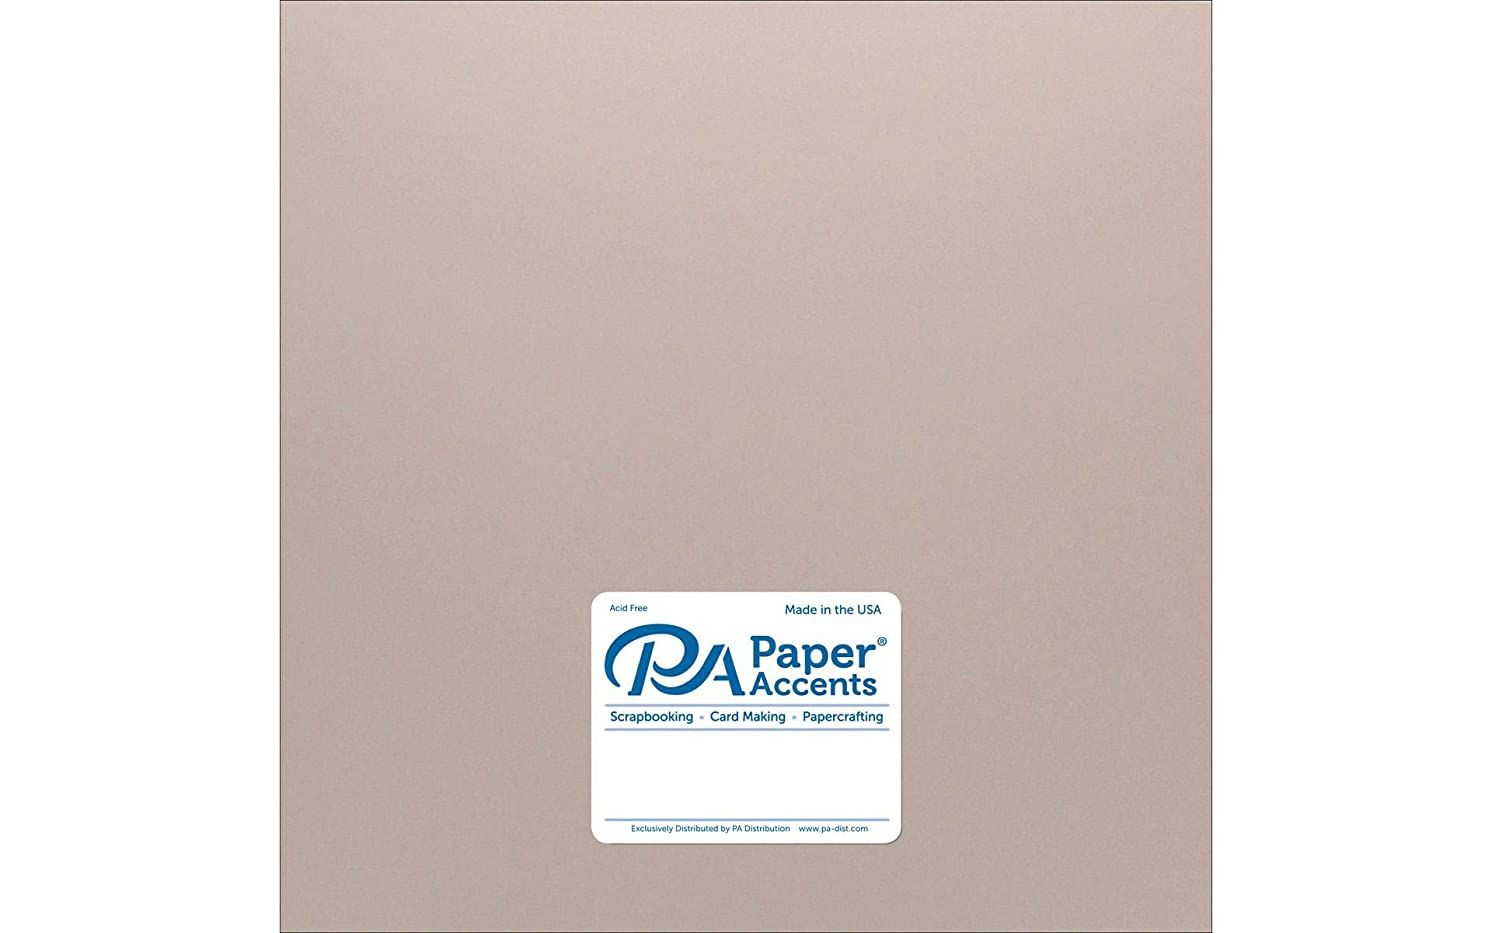 PA Paper Accents ADP1212-25.8866C PearlizedCdstk1212Rose Gold